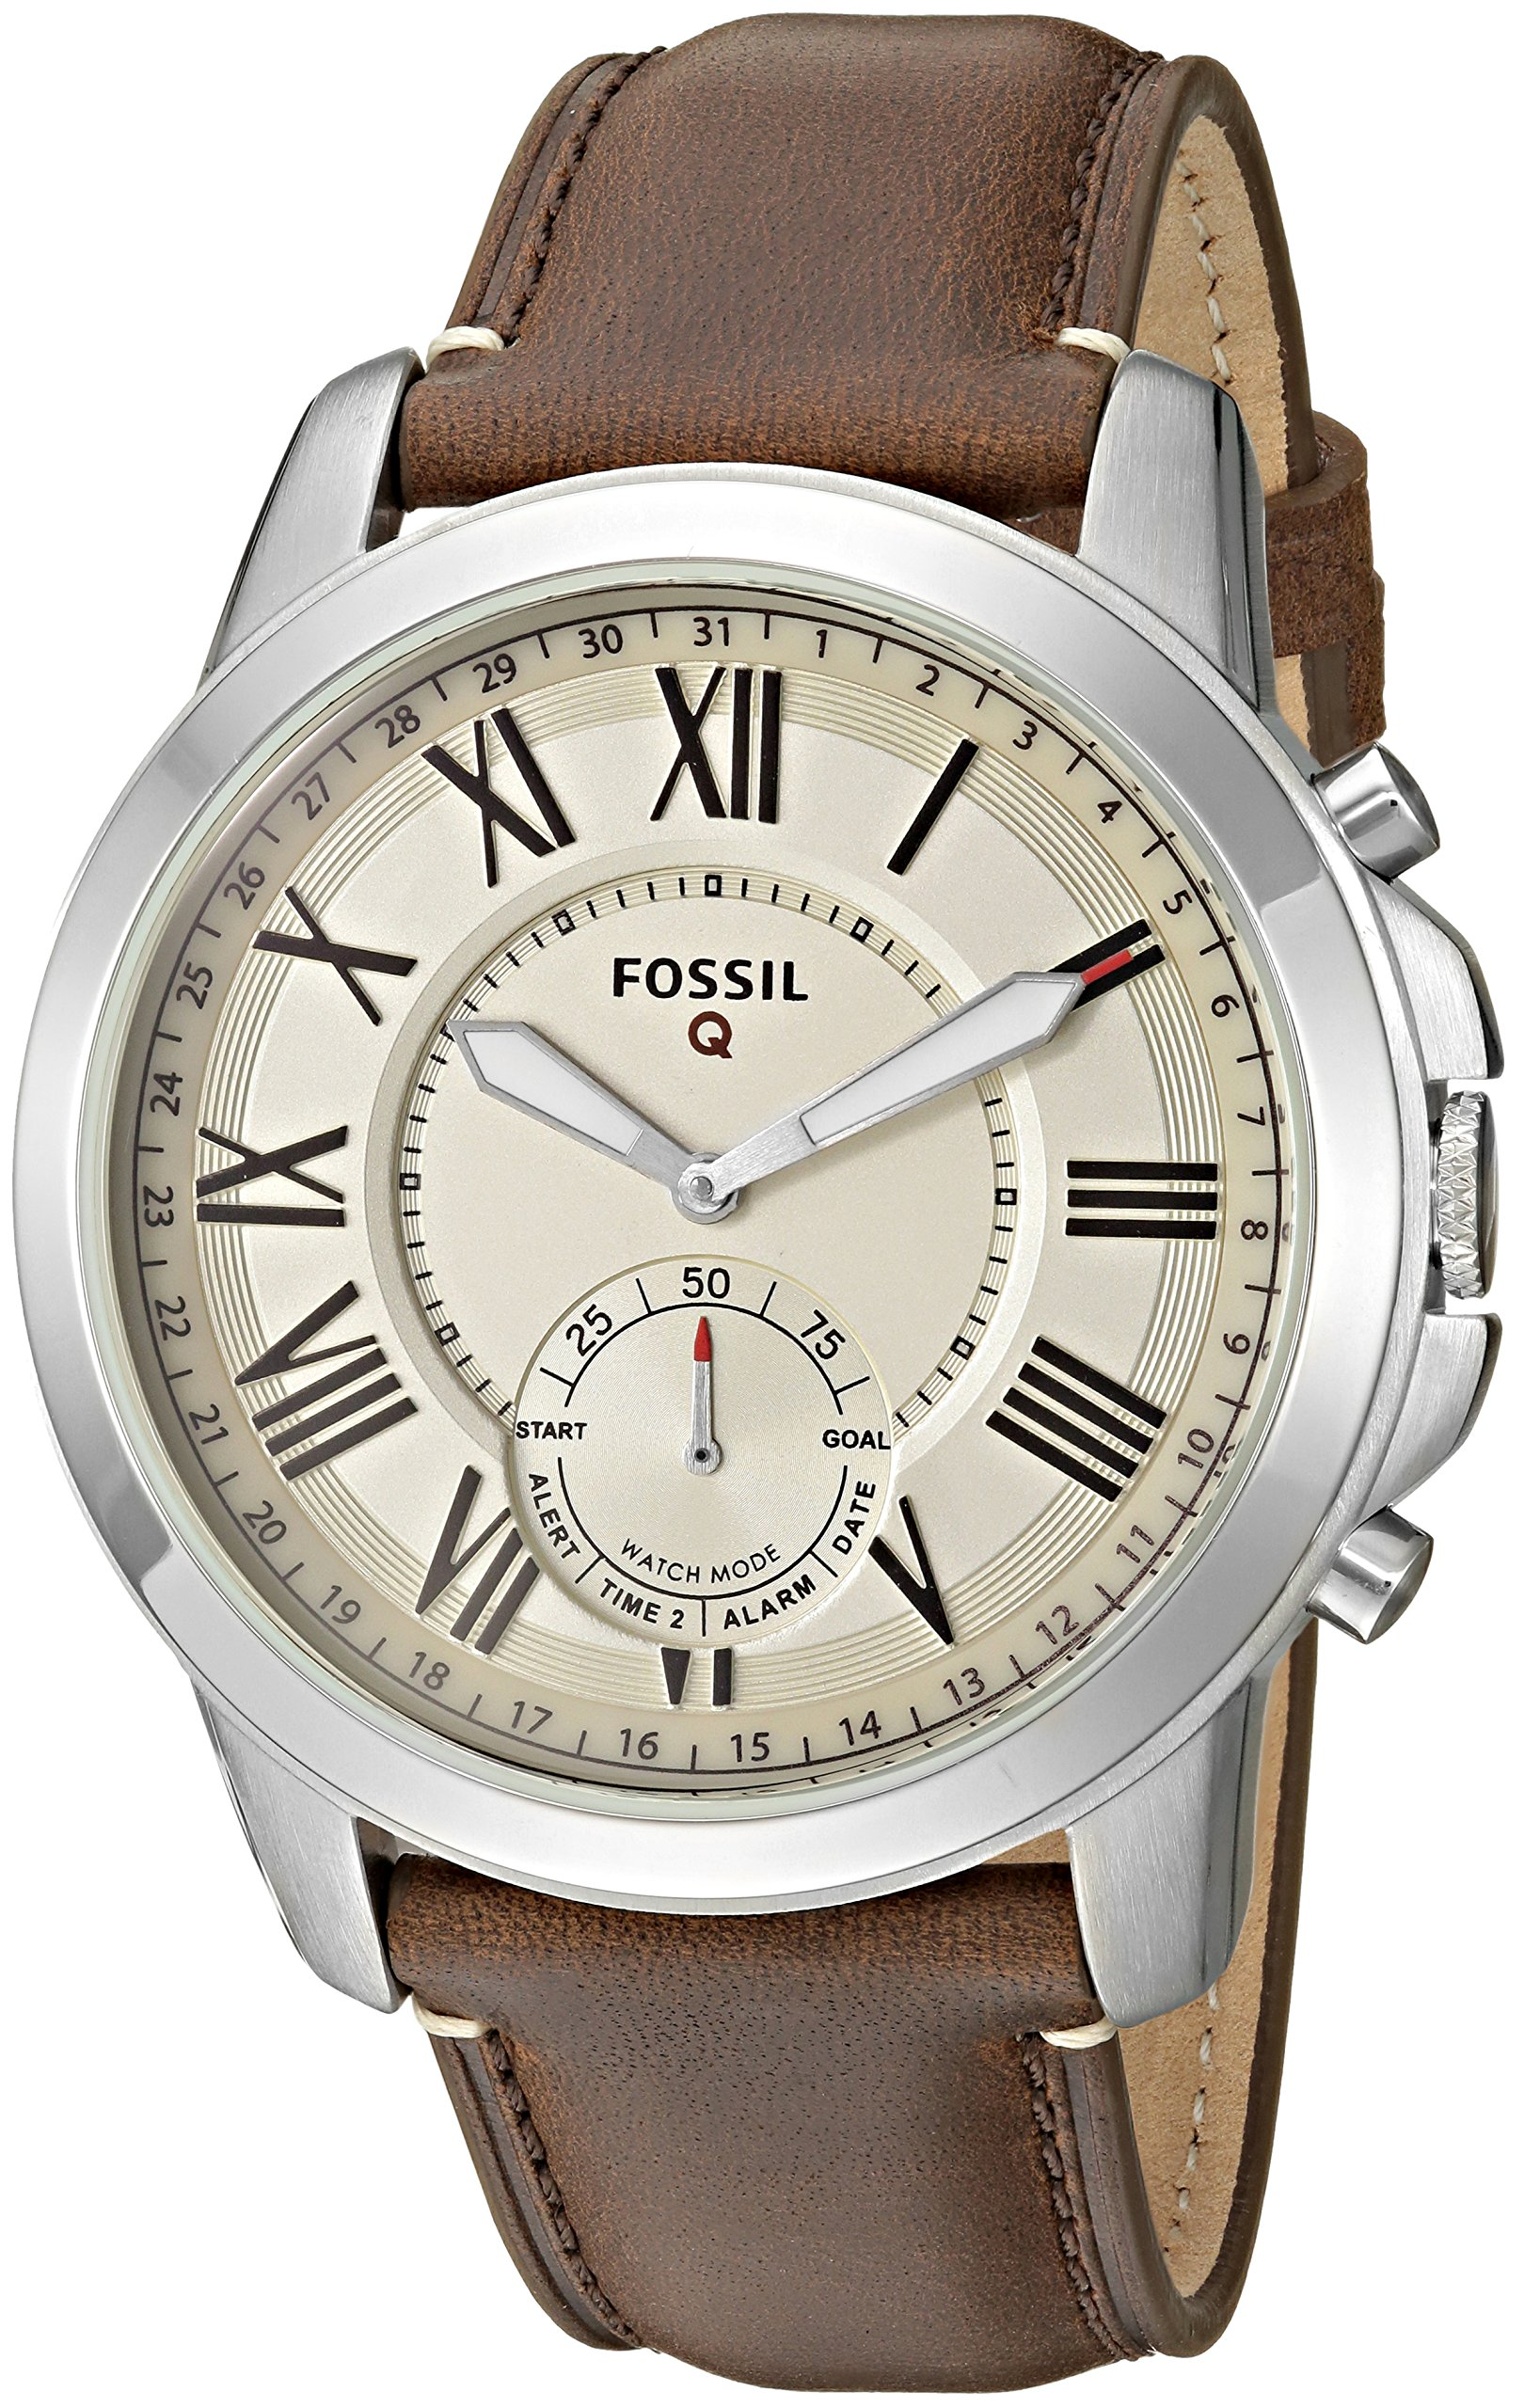 Fossil Q Men's Grant Stainless Steel and Leather Hybrid Smartwatch, Color: Silver-Tone, Brown (Model: FTW1118) by Fossil